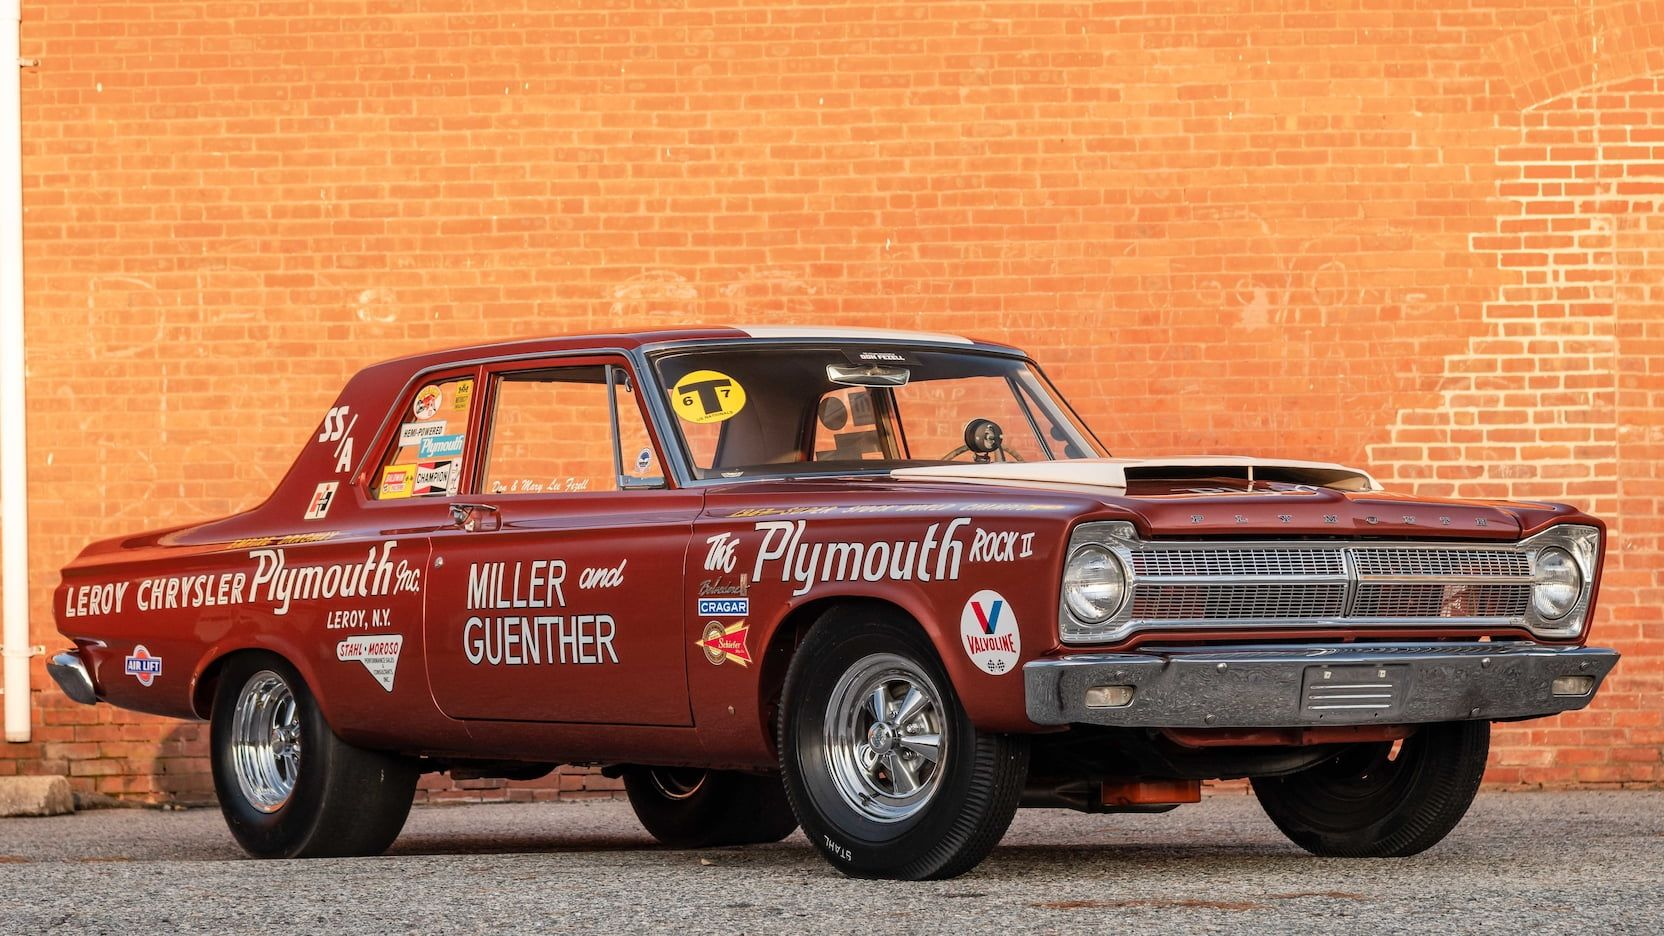 Pin By Jeff Copple On Mopar Cars Old Race Cars Drag Racing Cars Mopar